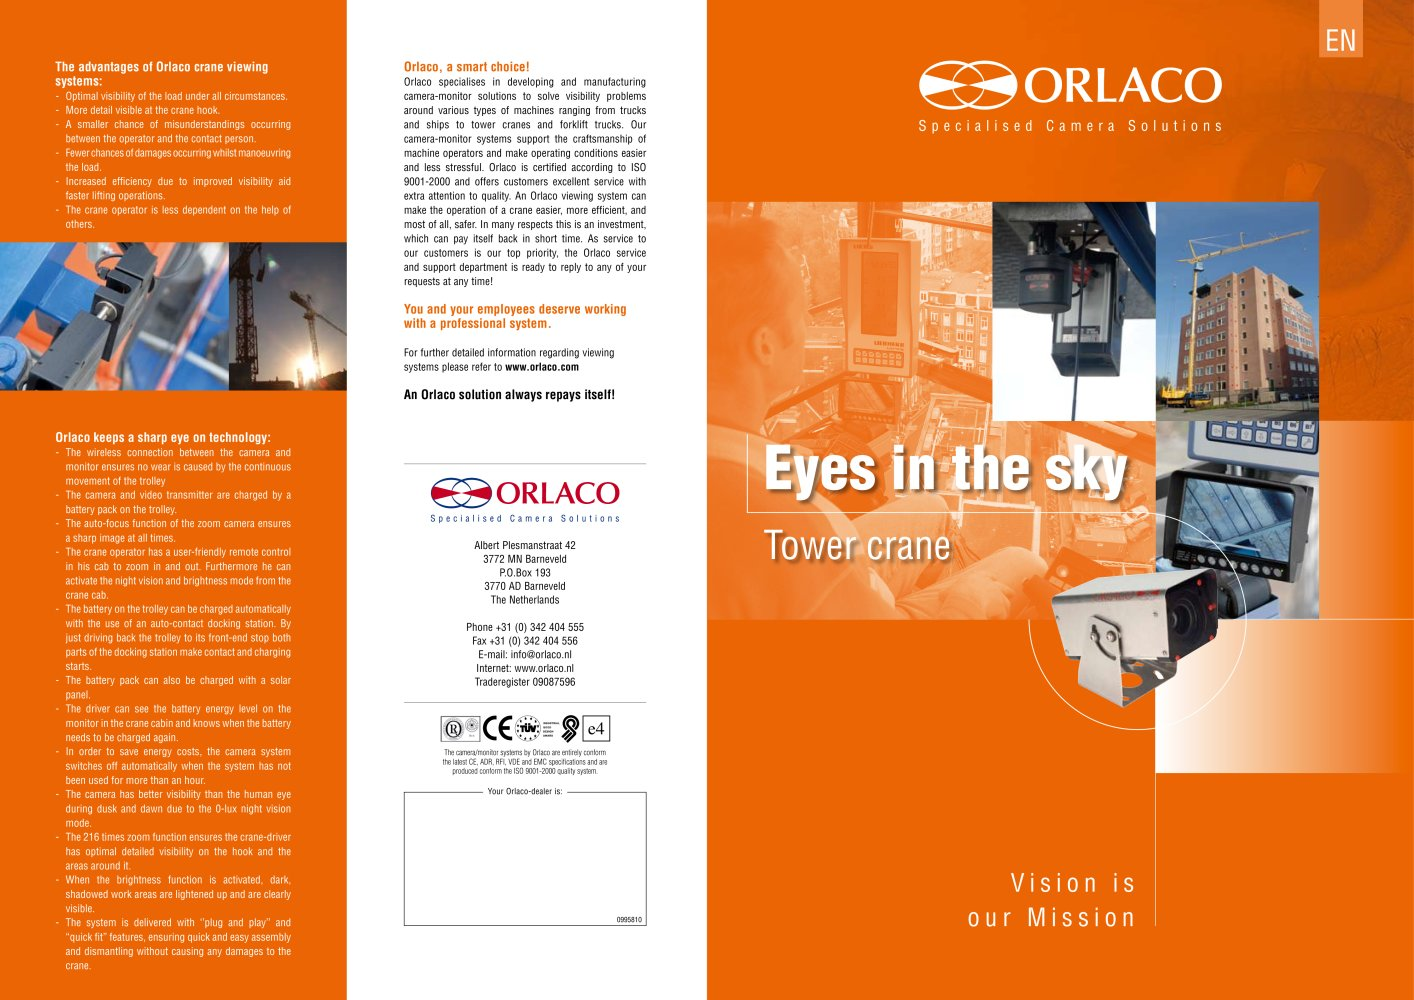 Orlaco Camera Wiring Diagram 28 Images Paramount Caravan Eyes Sky Tower Crane 198317 1b All Catalogues And Technical Brochures Pdf Catalogue